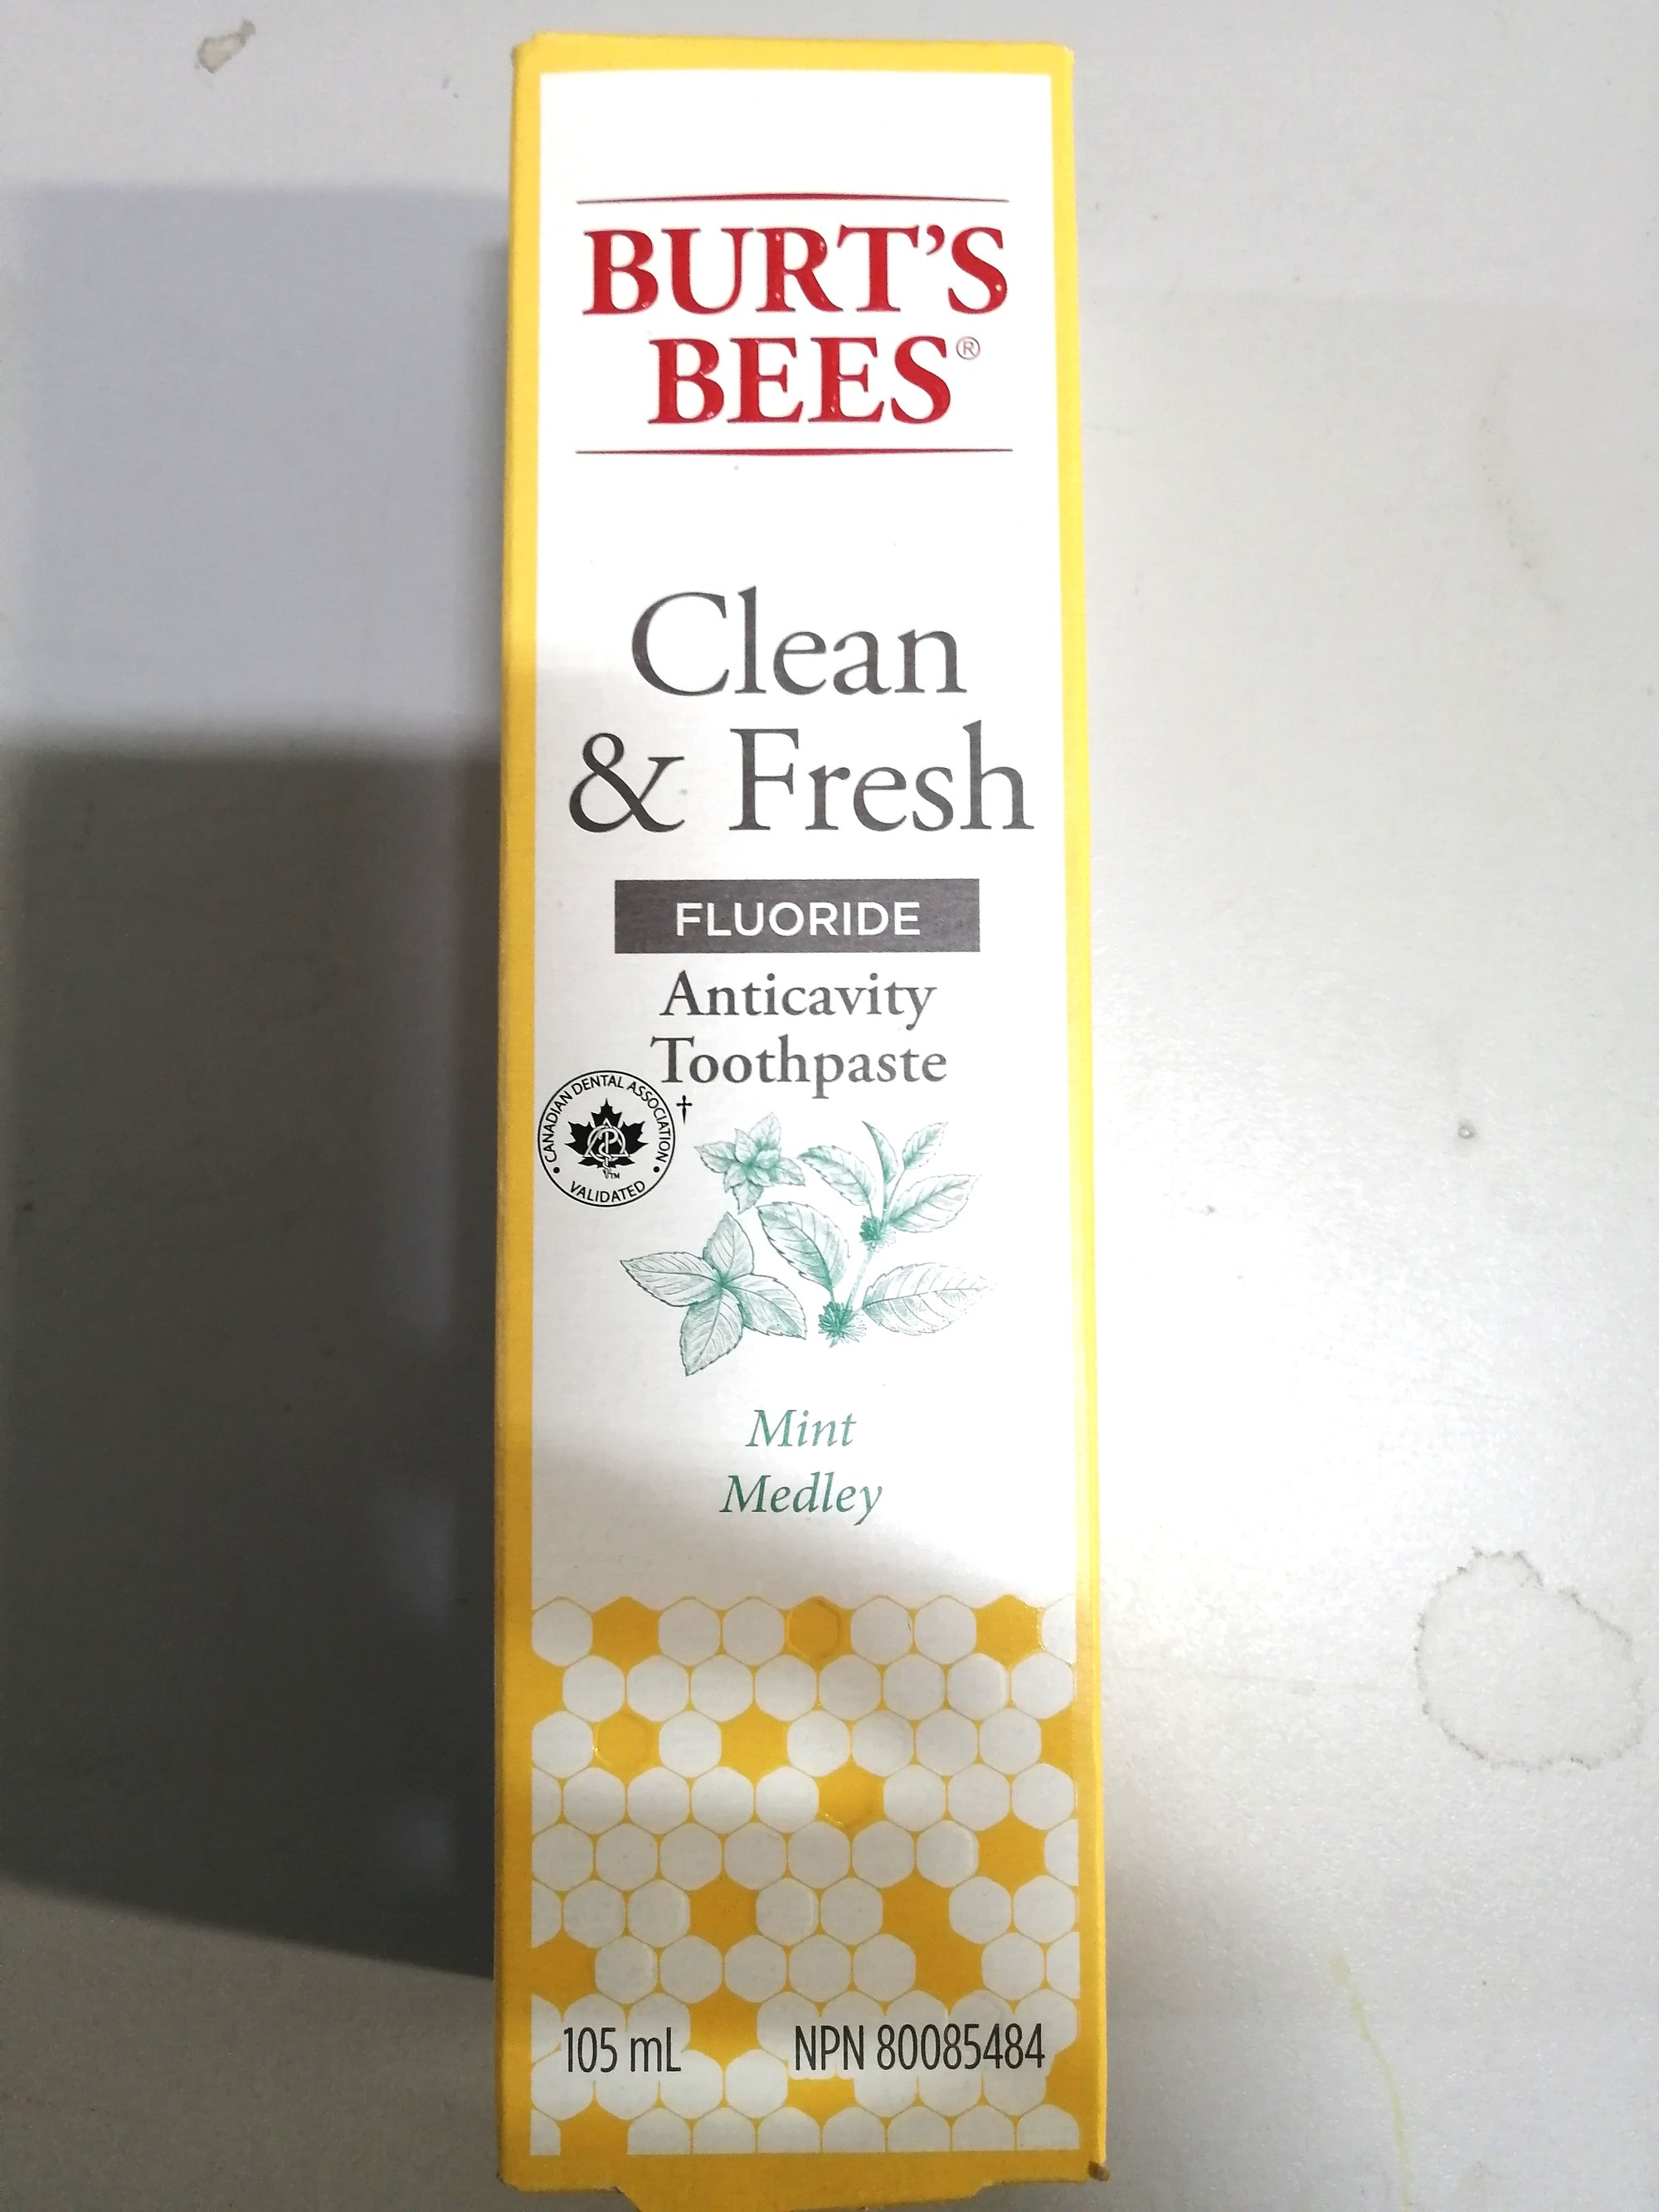 Burt's Bees Clean & Fresh Fluoride Anticavity Toothpaste Mint Medley 105mL